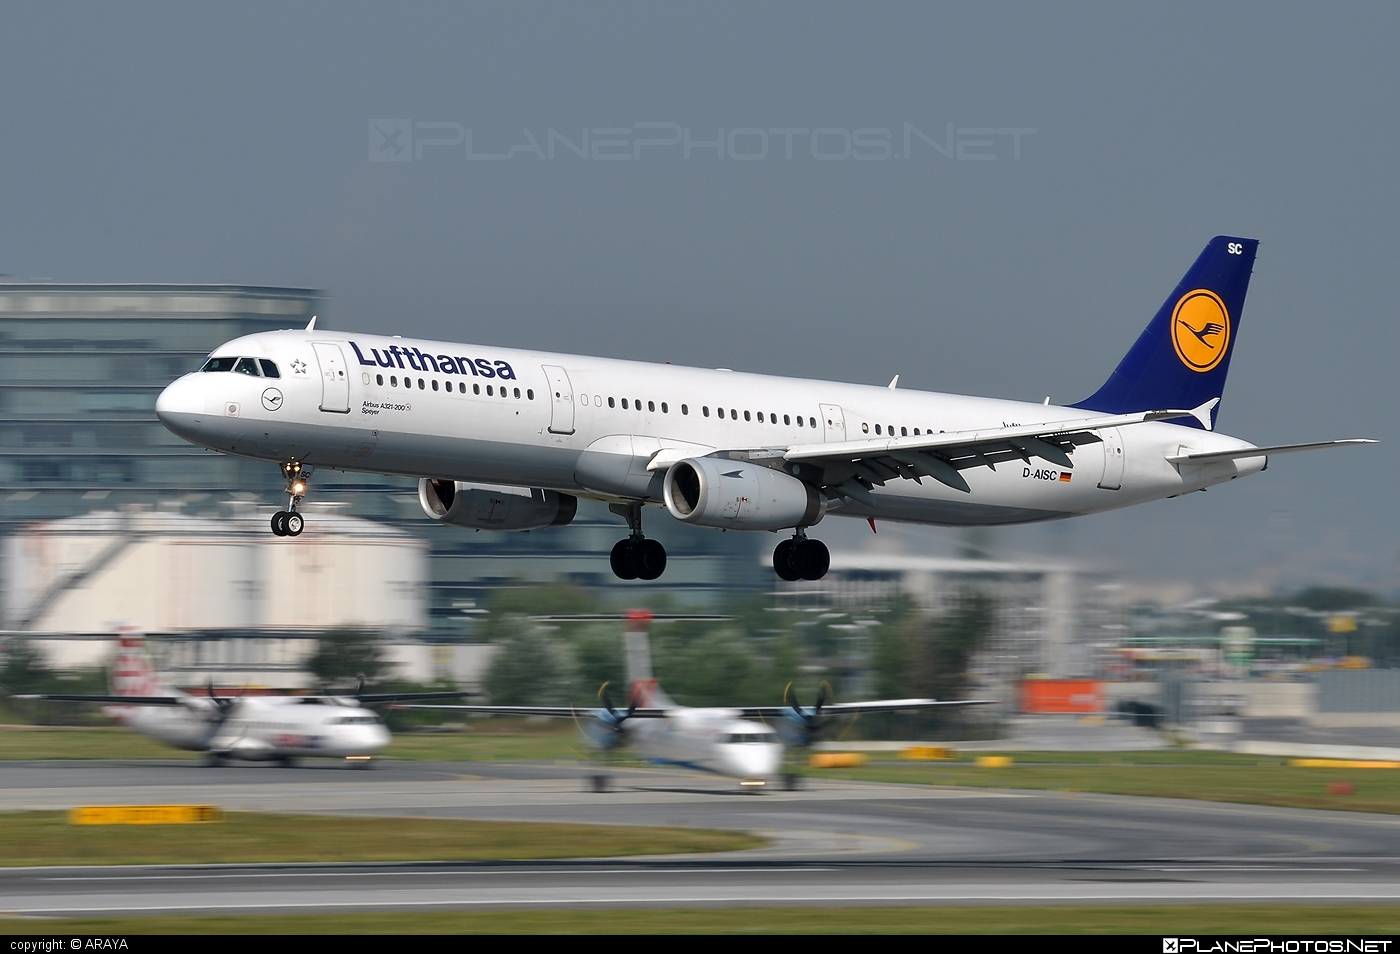 Airbus A321-231 - D-AISC operated by Lufthansa #a320family #a321 #airbus #airbus321 #lufthansa